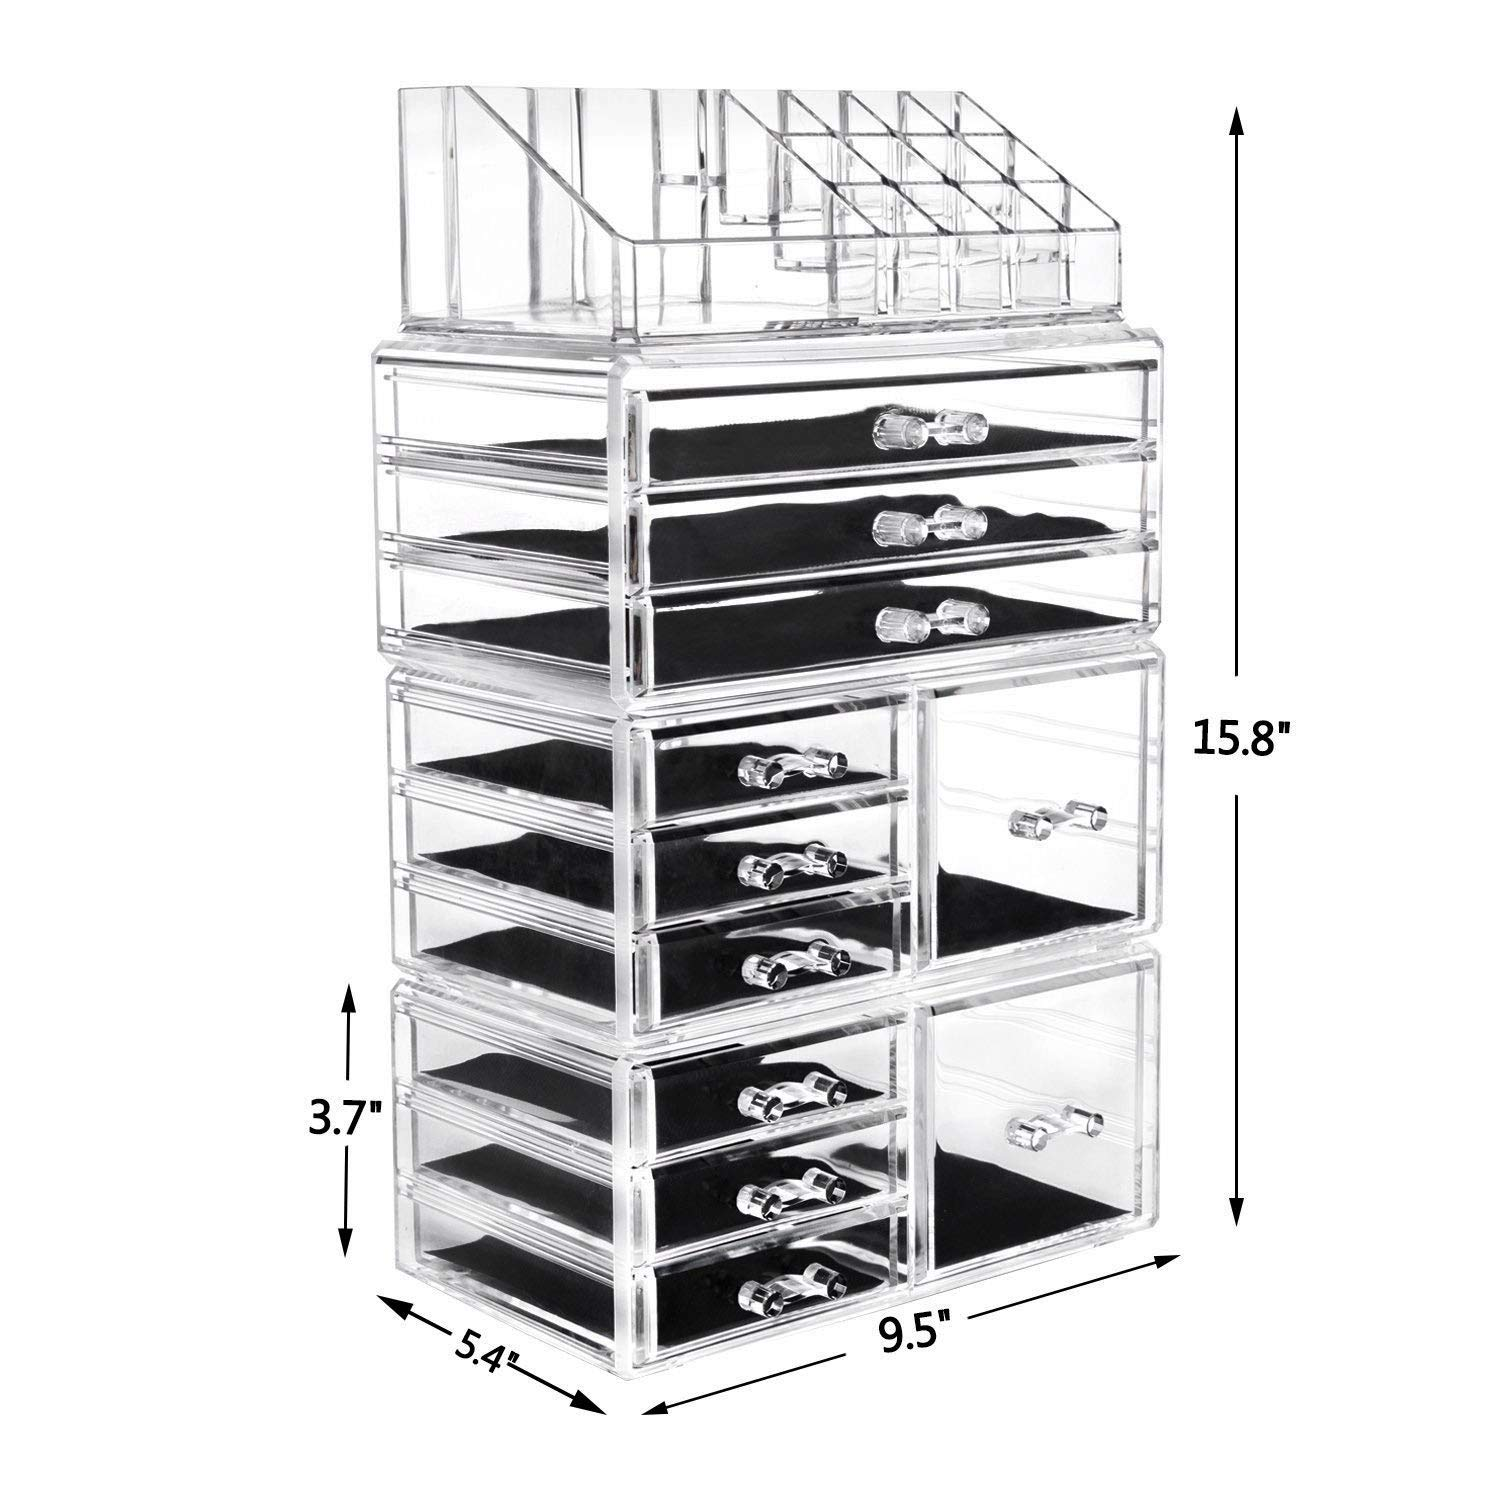 SF-1122-10 4Pcs / Set Plastic Cosmetics Storage Rack Transparent by Tenozek (Image #8)